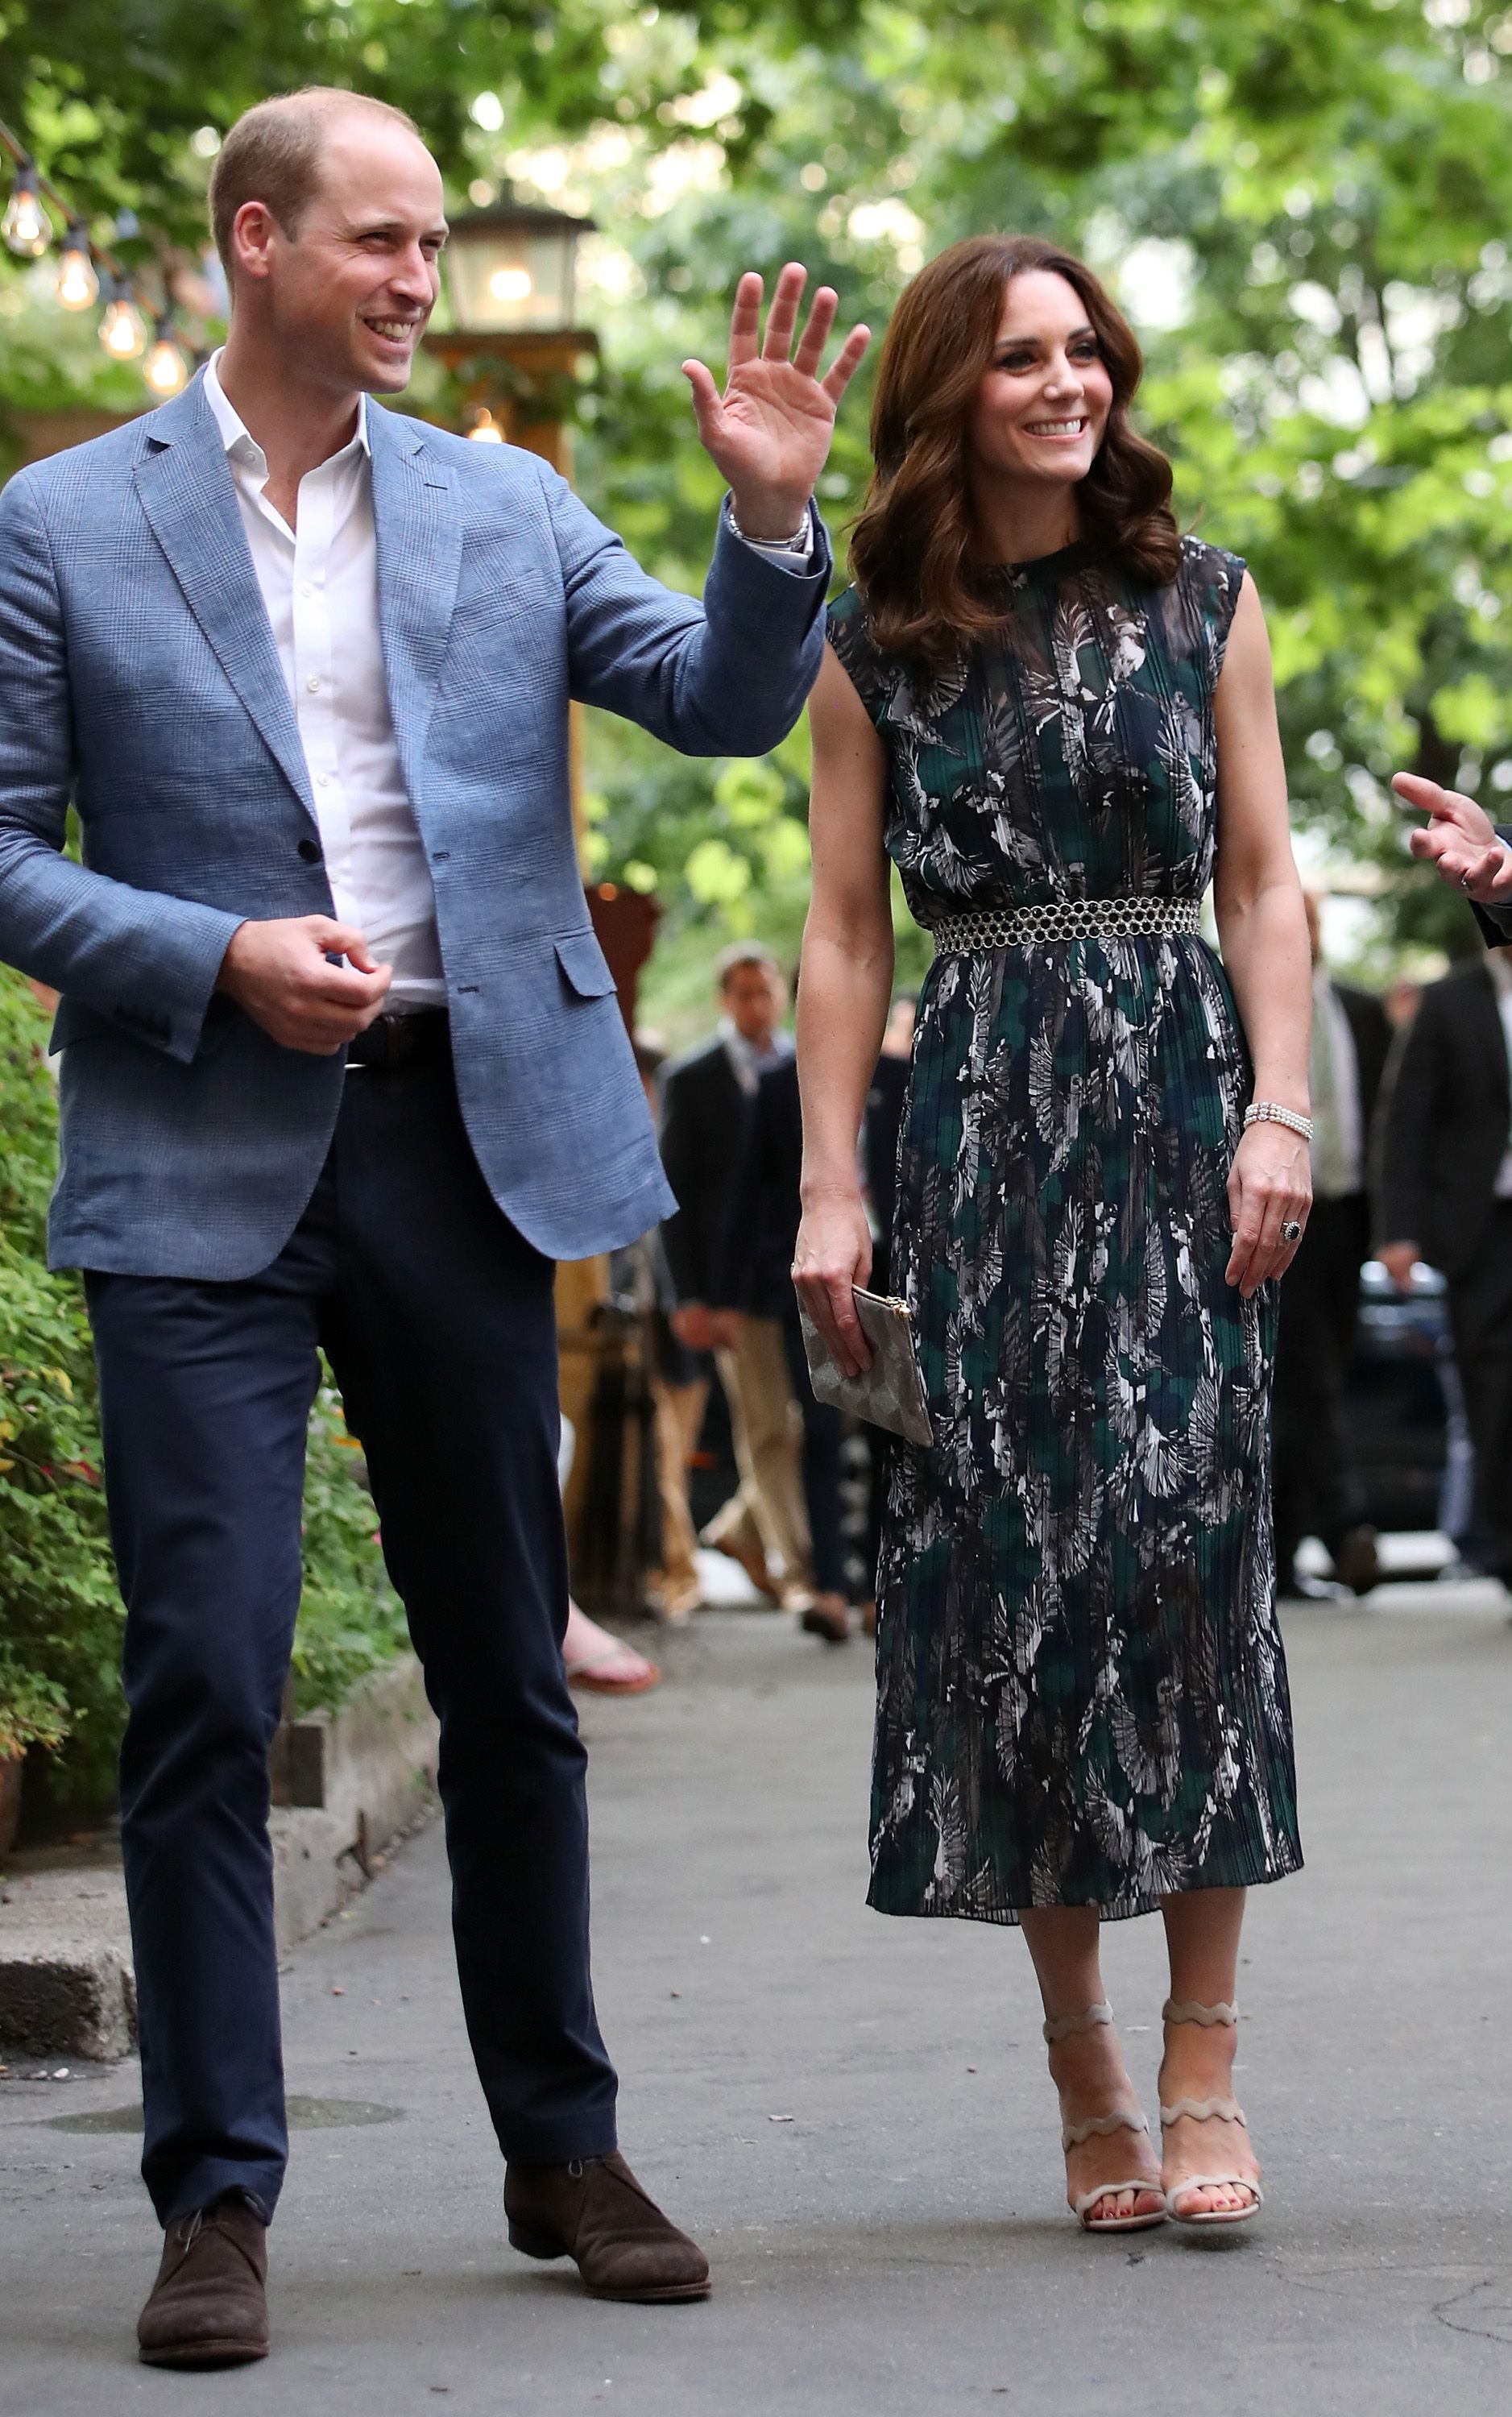 Kate Middleton Best Fashion And Style Moments Kate Middleton S